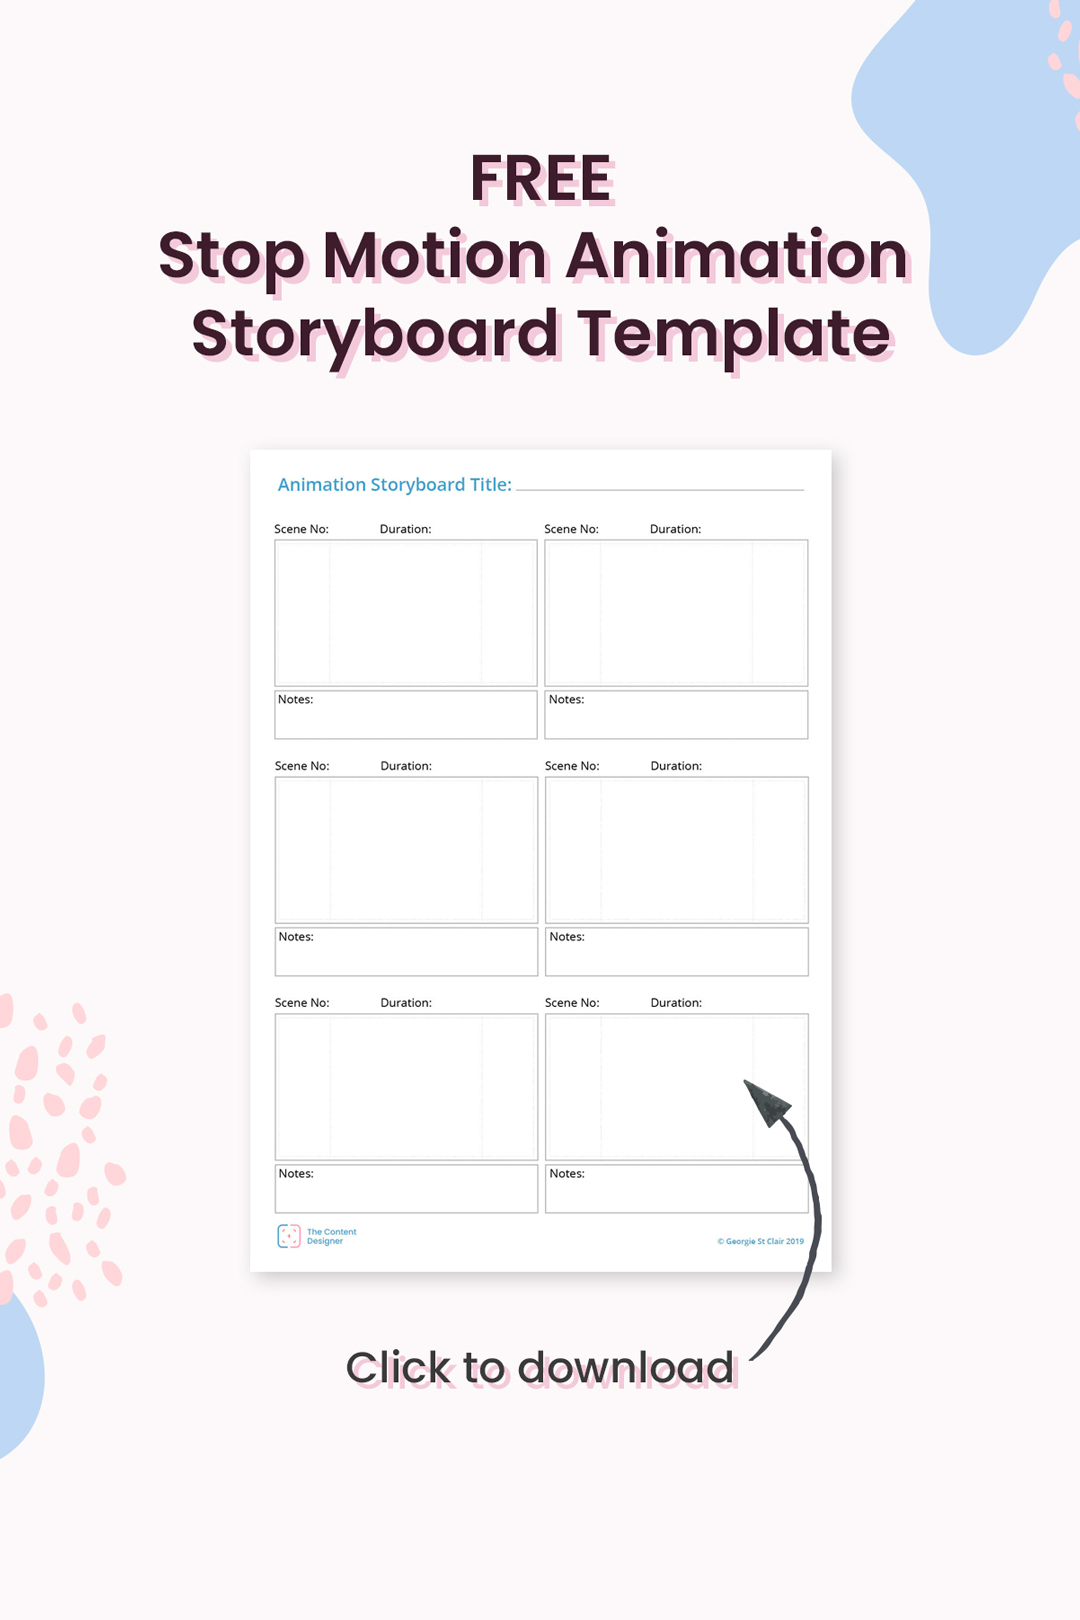 Free-Storyboard-Template-Download.jpg